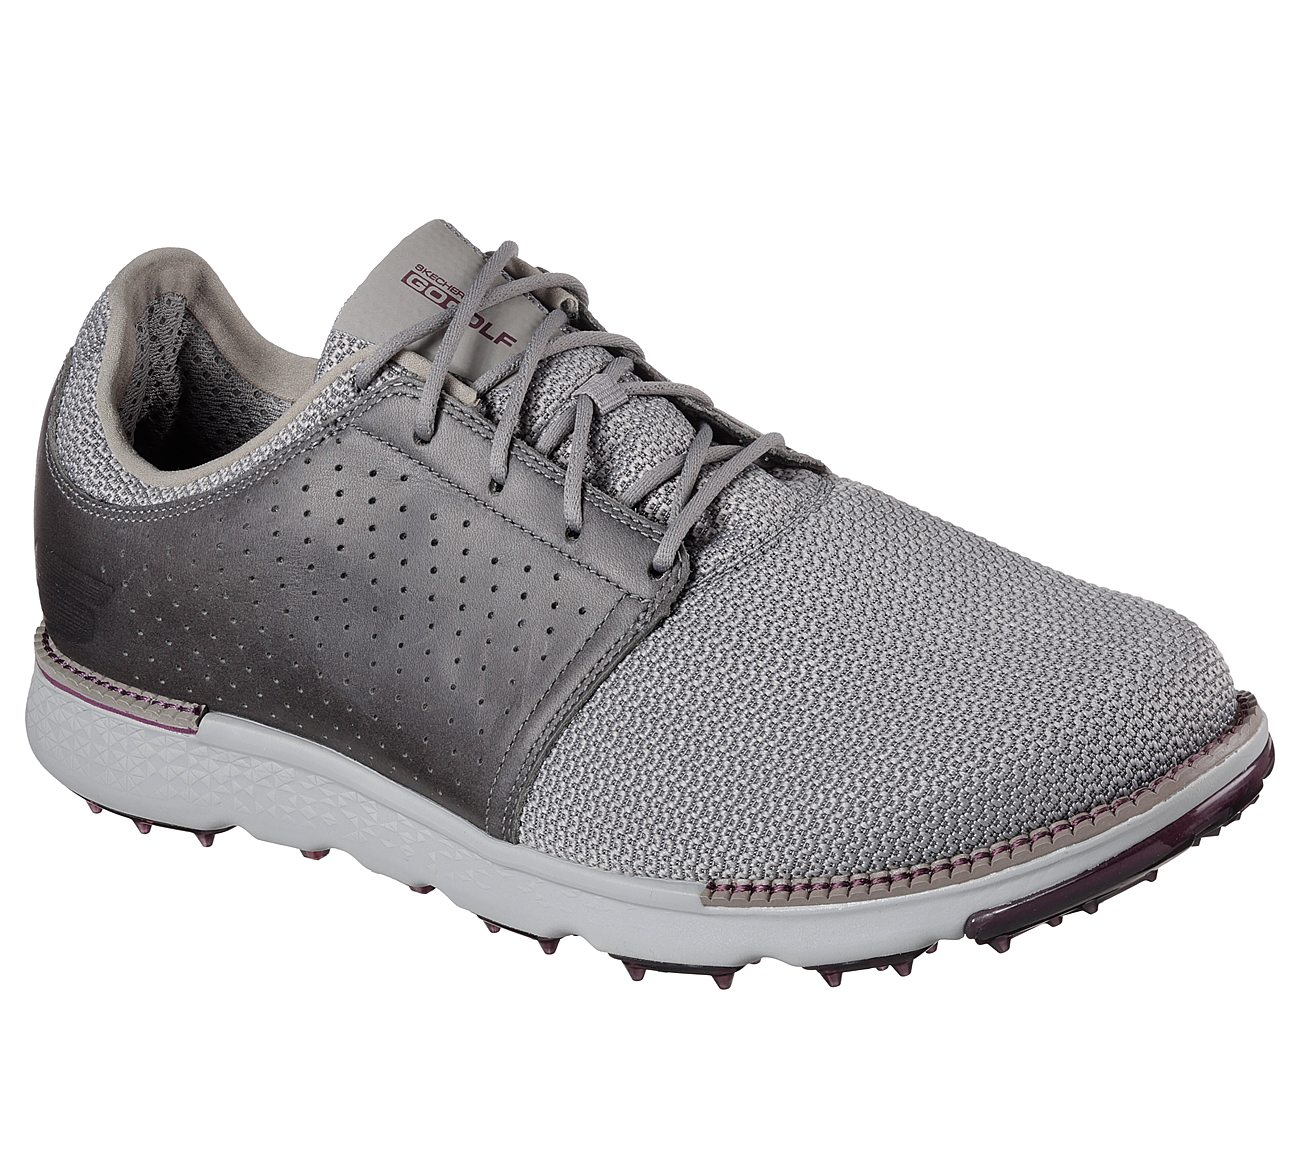 4c8e6d5758df Buy SKECHERS Skechers GO GOLF Elite V.3 - Approach RF Skechers ...